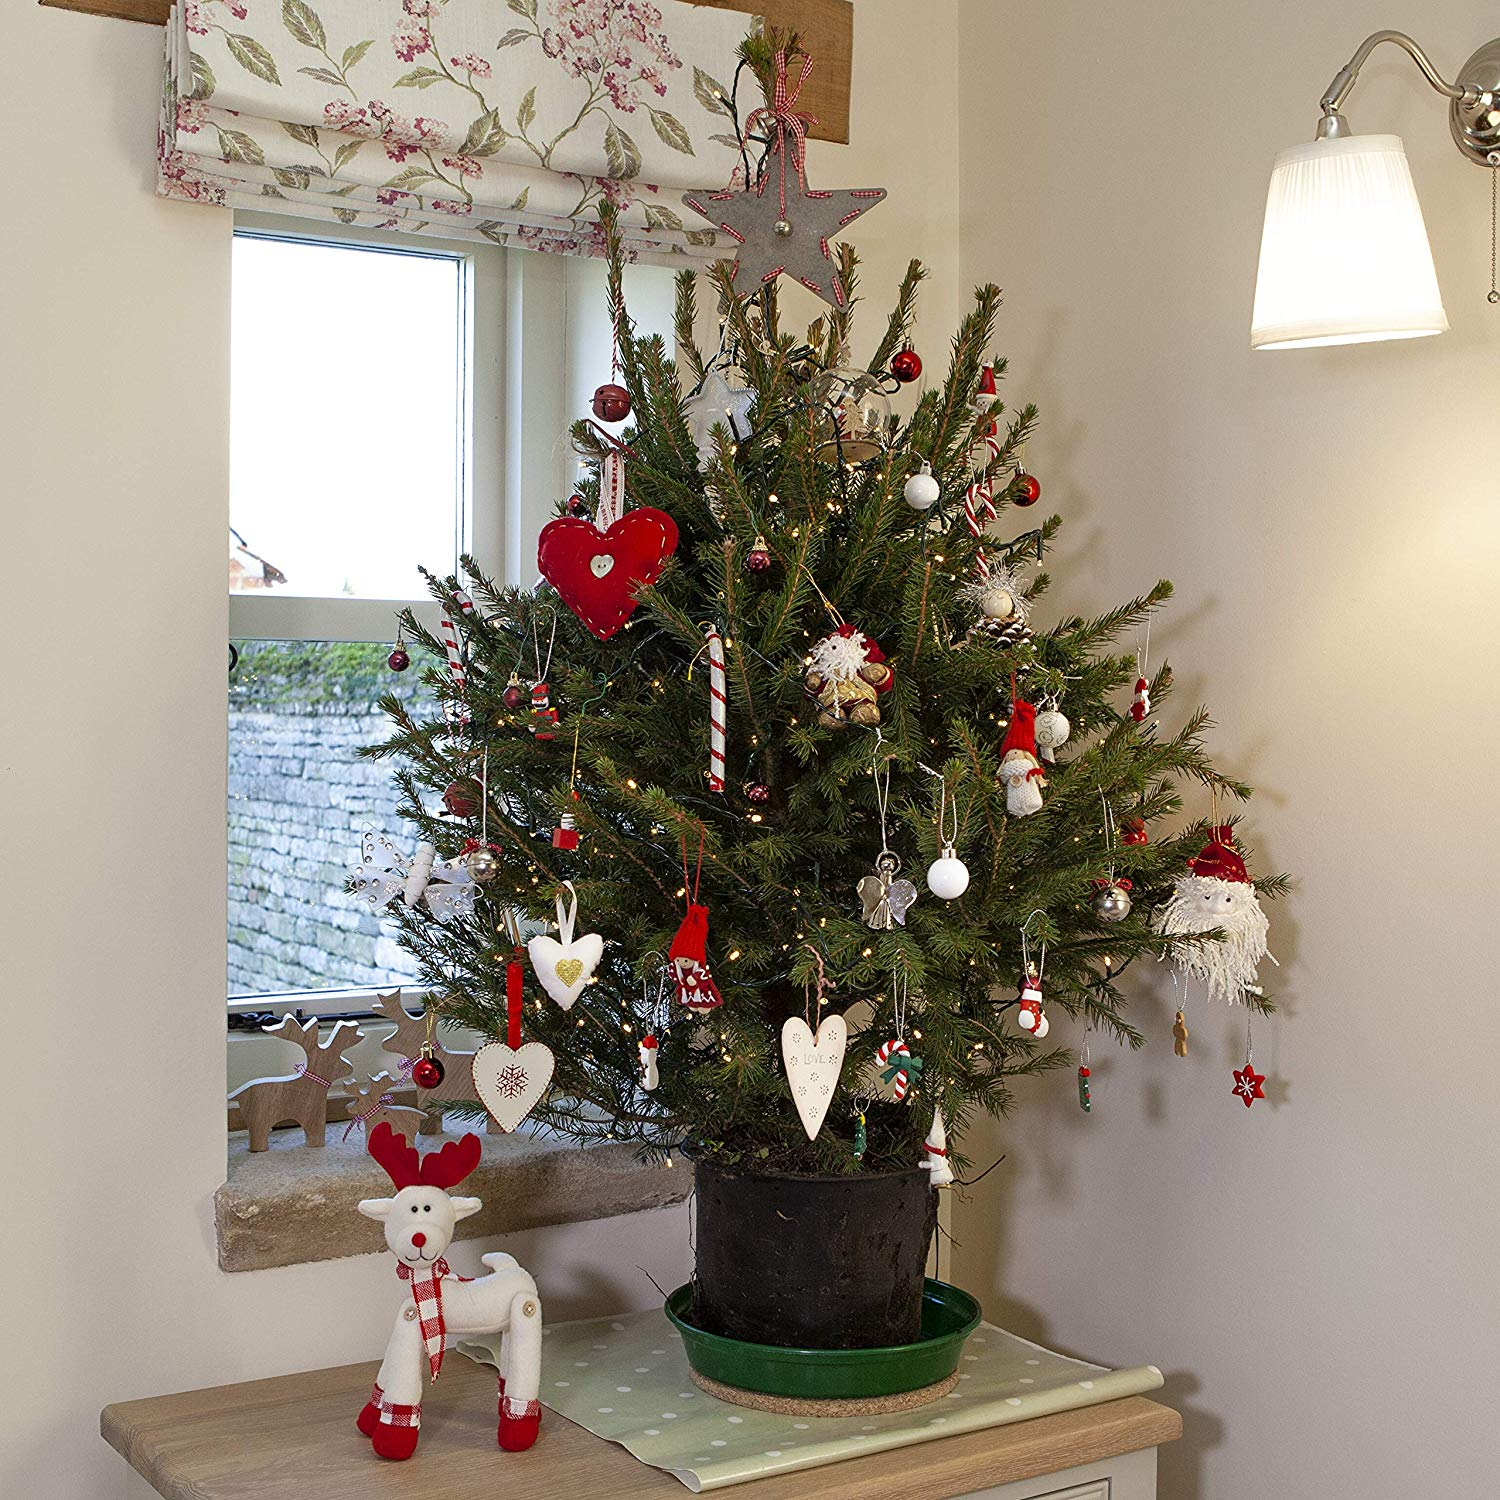 Pot Grown Norway Spruce Living Christmas Tree